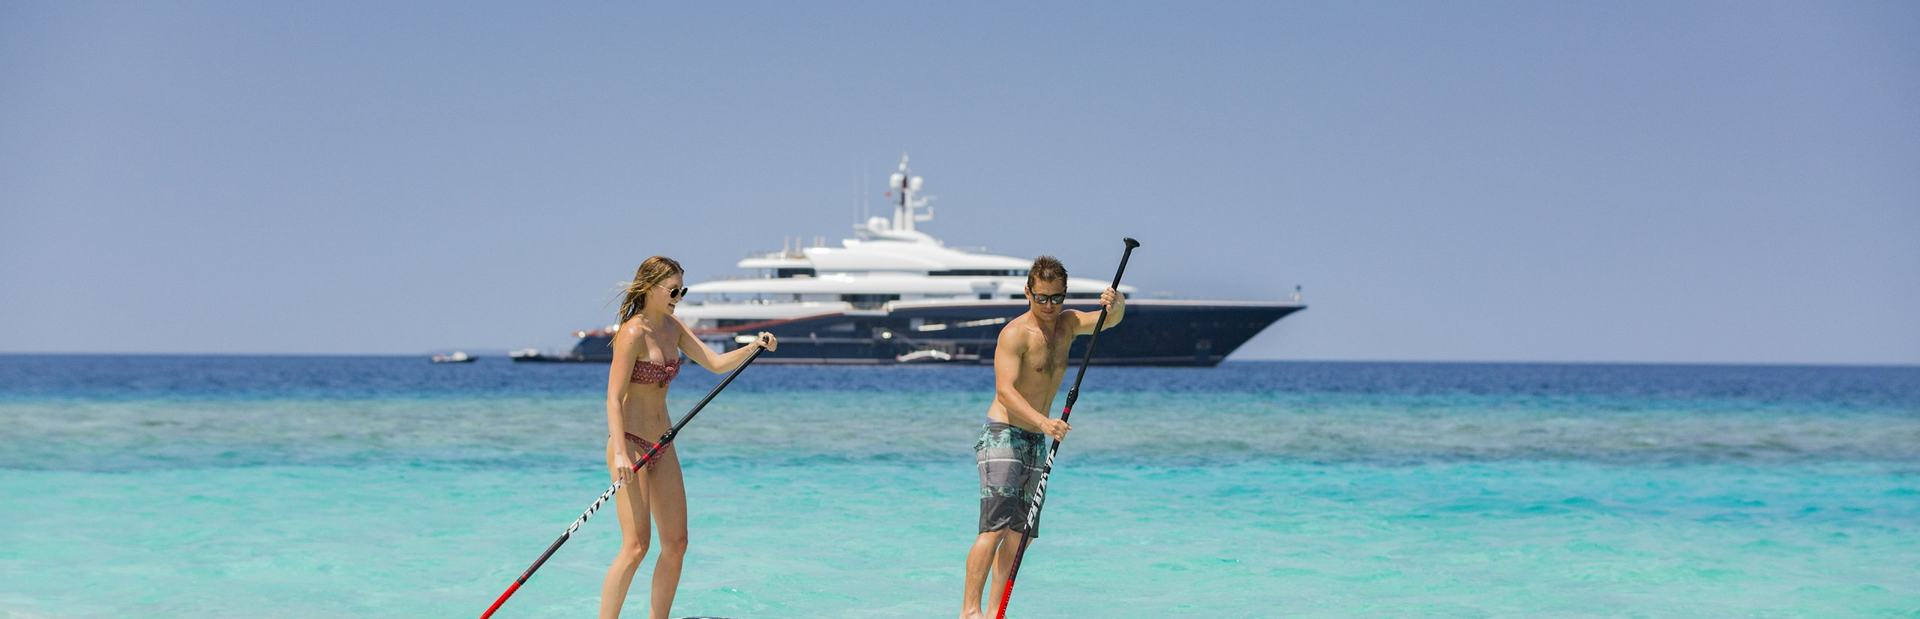 6 reasons to charter a yacht in the Maldives this winter